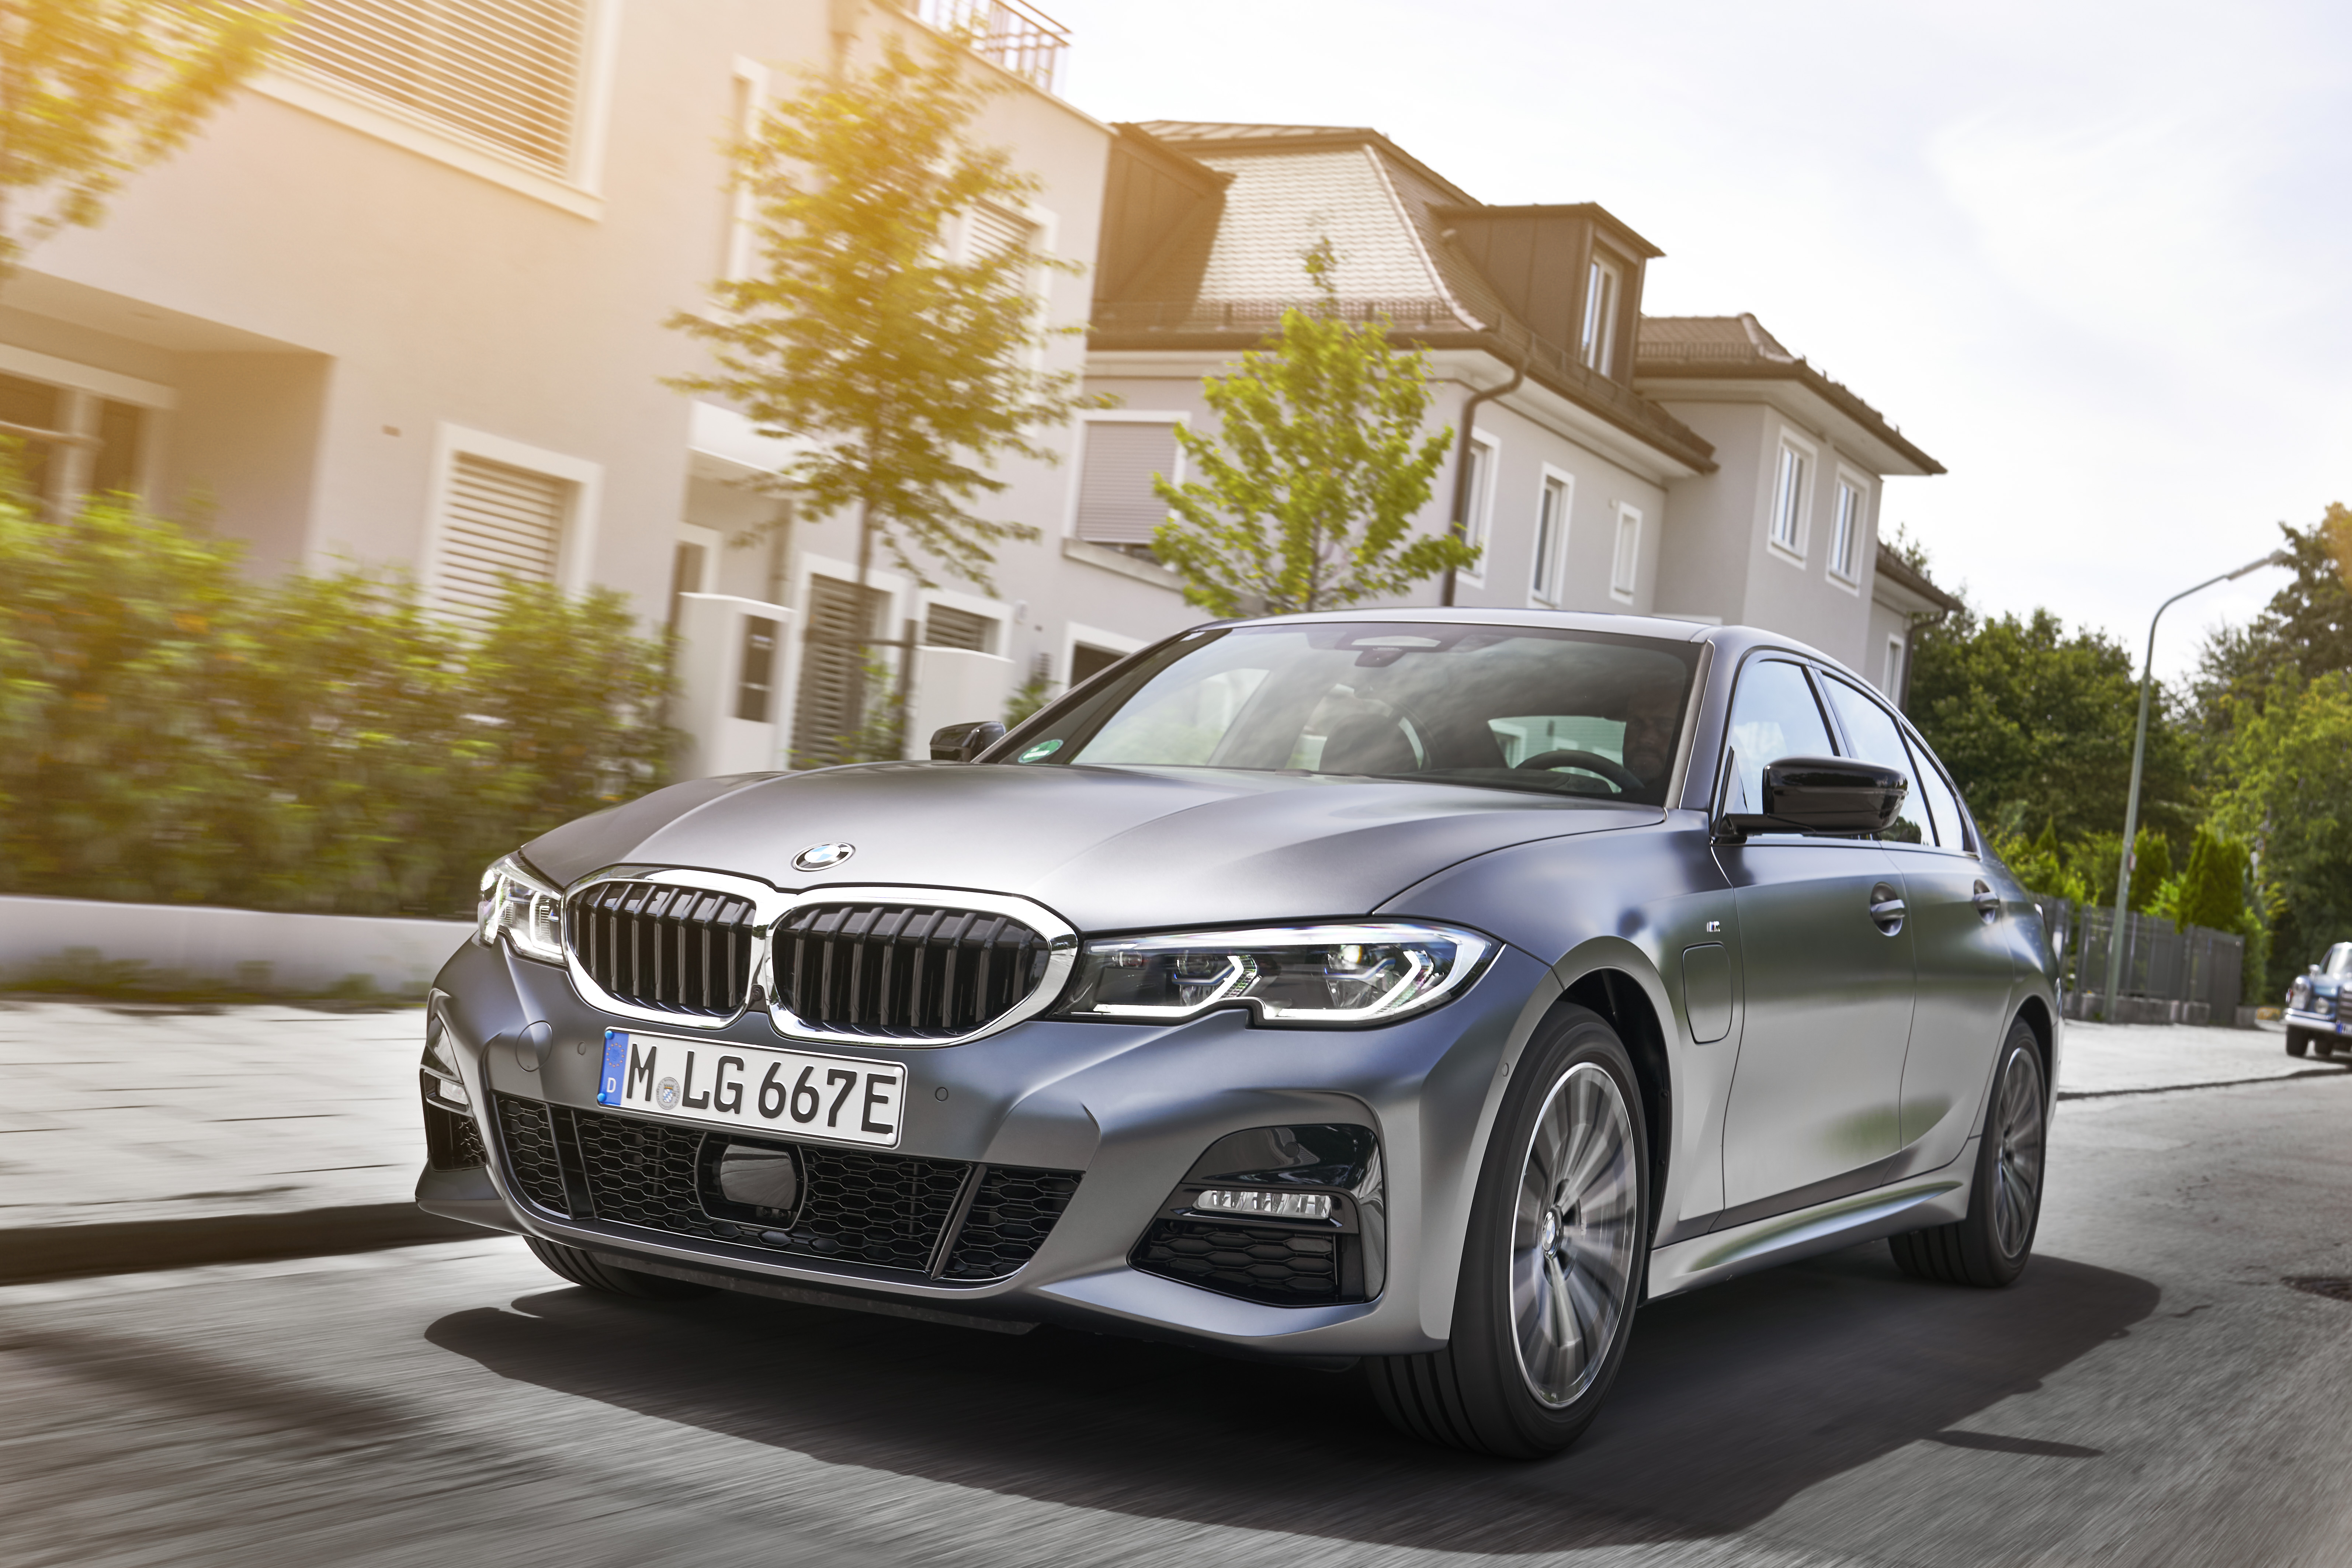 The 330e is BMW's latest hybrid